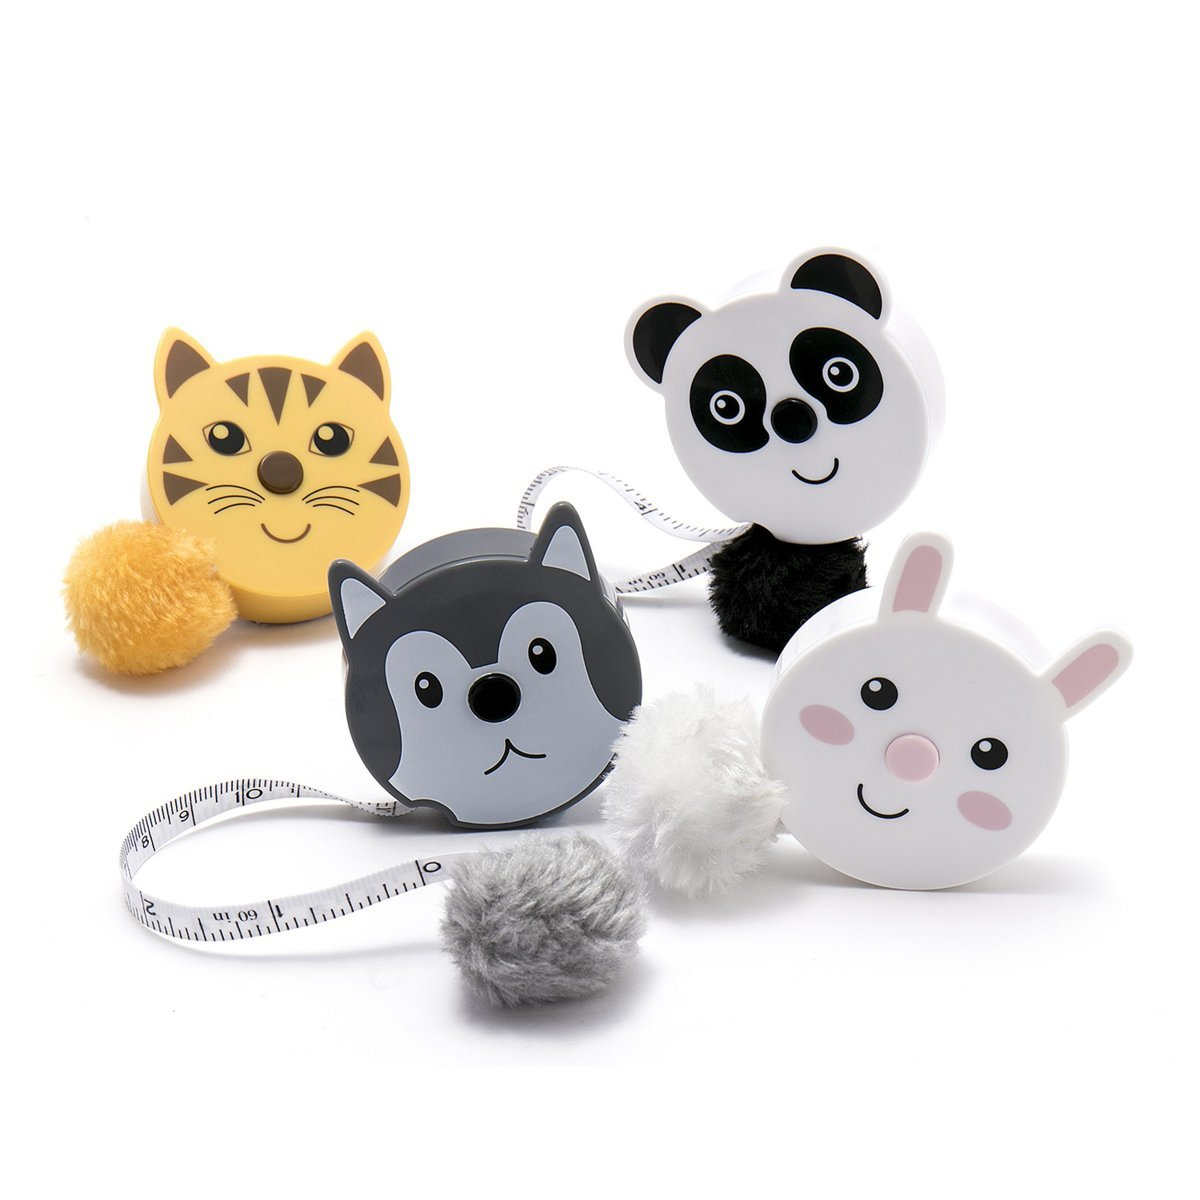 Bunny Rabbit Cute Animal Retractable Tape Measures with Fluffy Pom-Pom Tail and Lanyard Hole